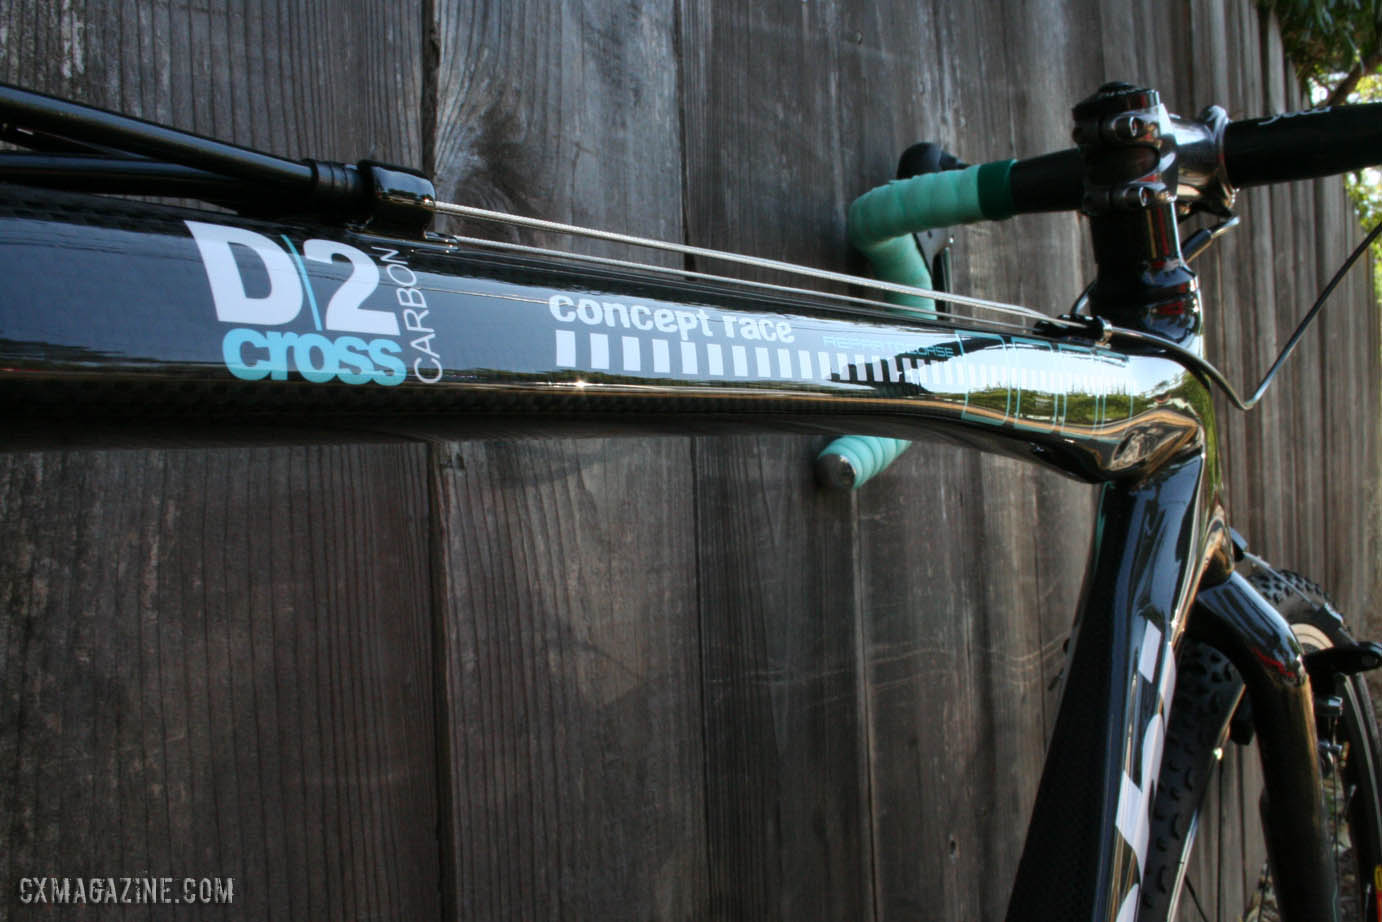 Flattened top tube on the Bianchi D2 Cross Concept Race